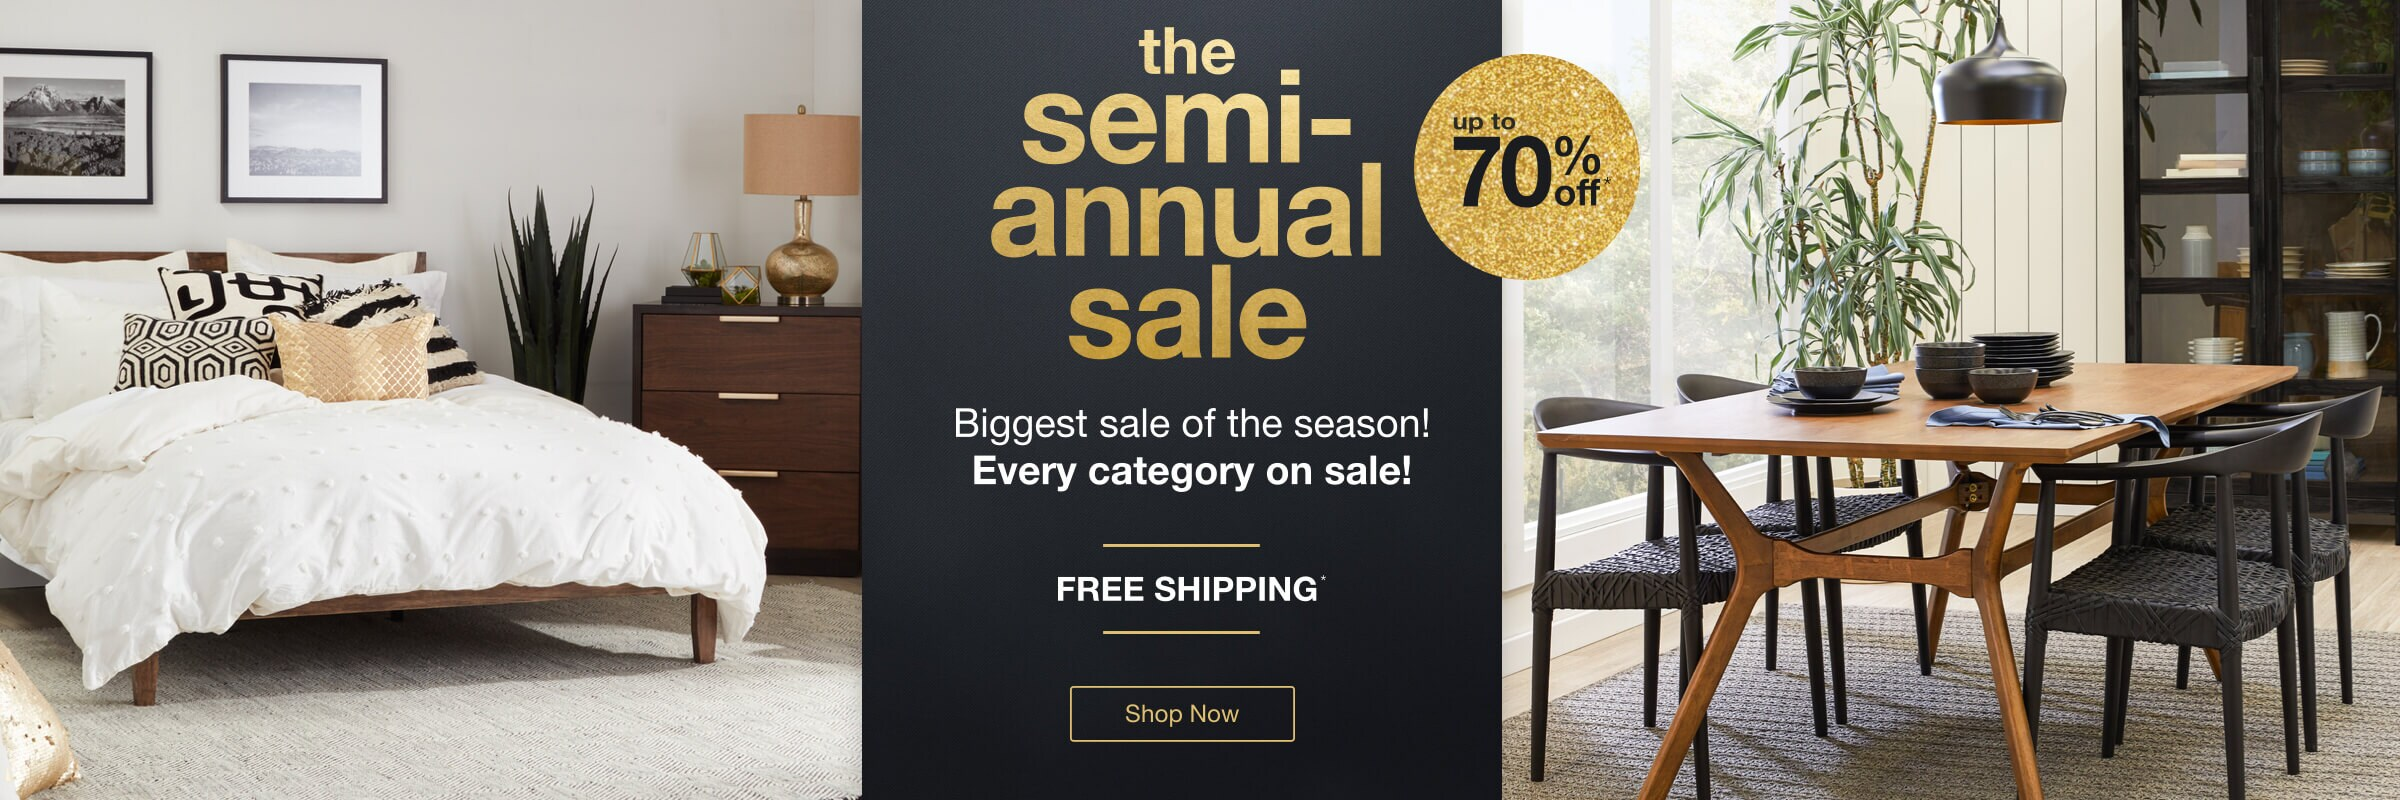 The Semi-Annual Sale desktop